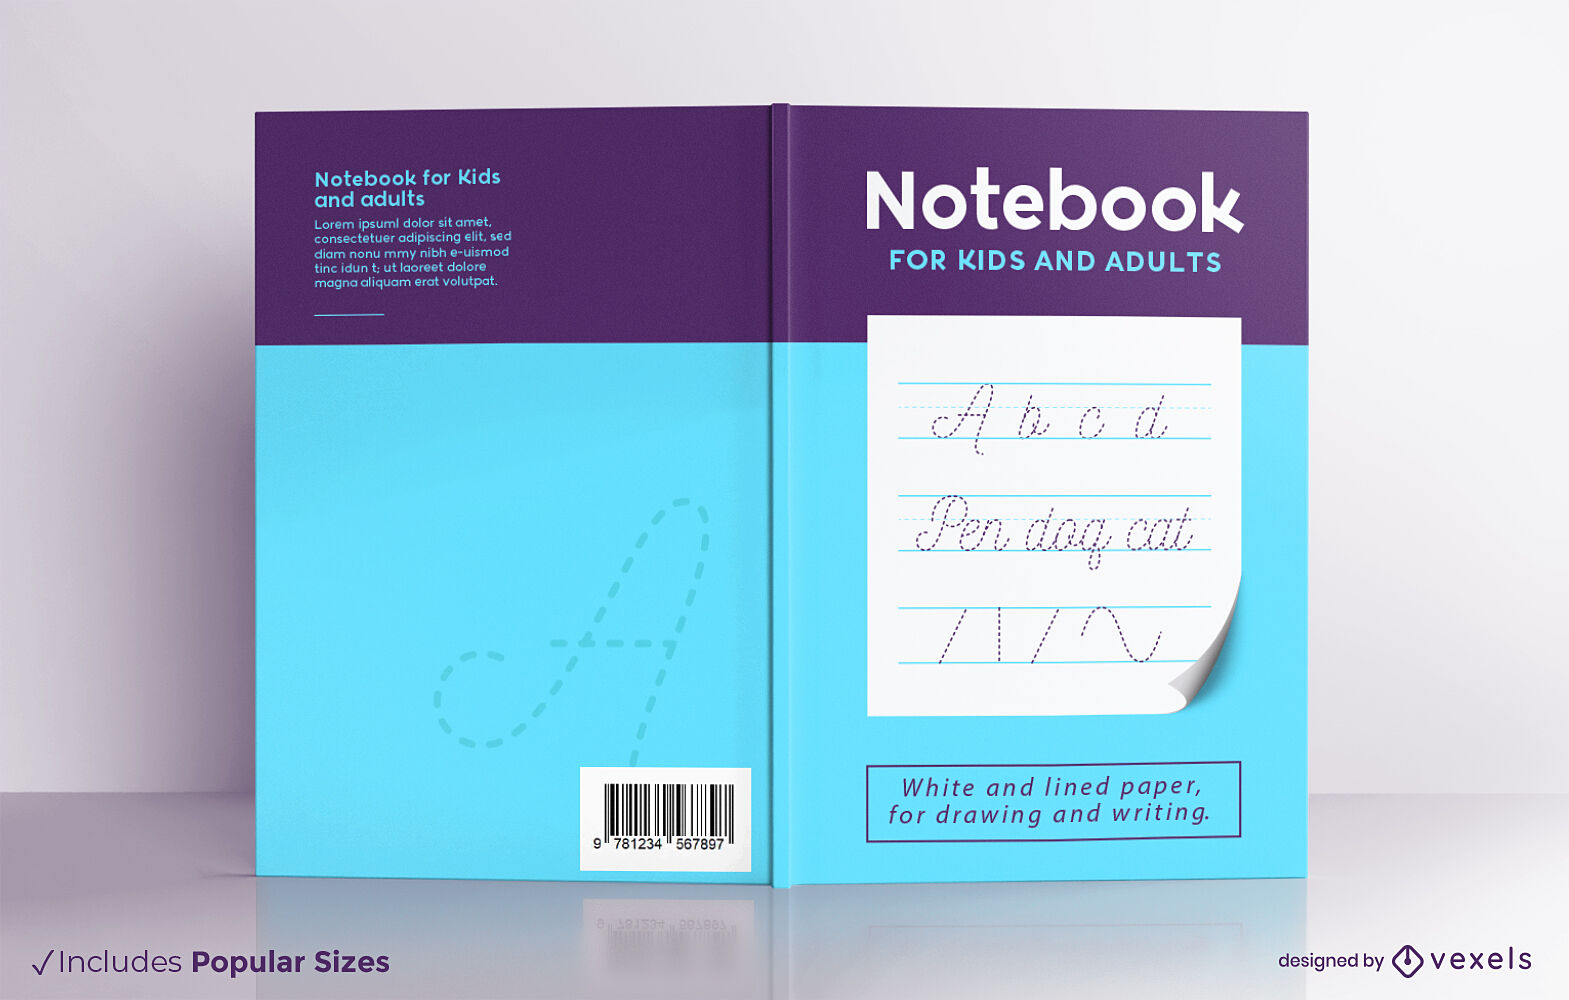 Kids and adults notebook cover design